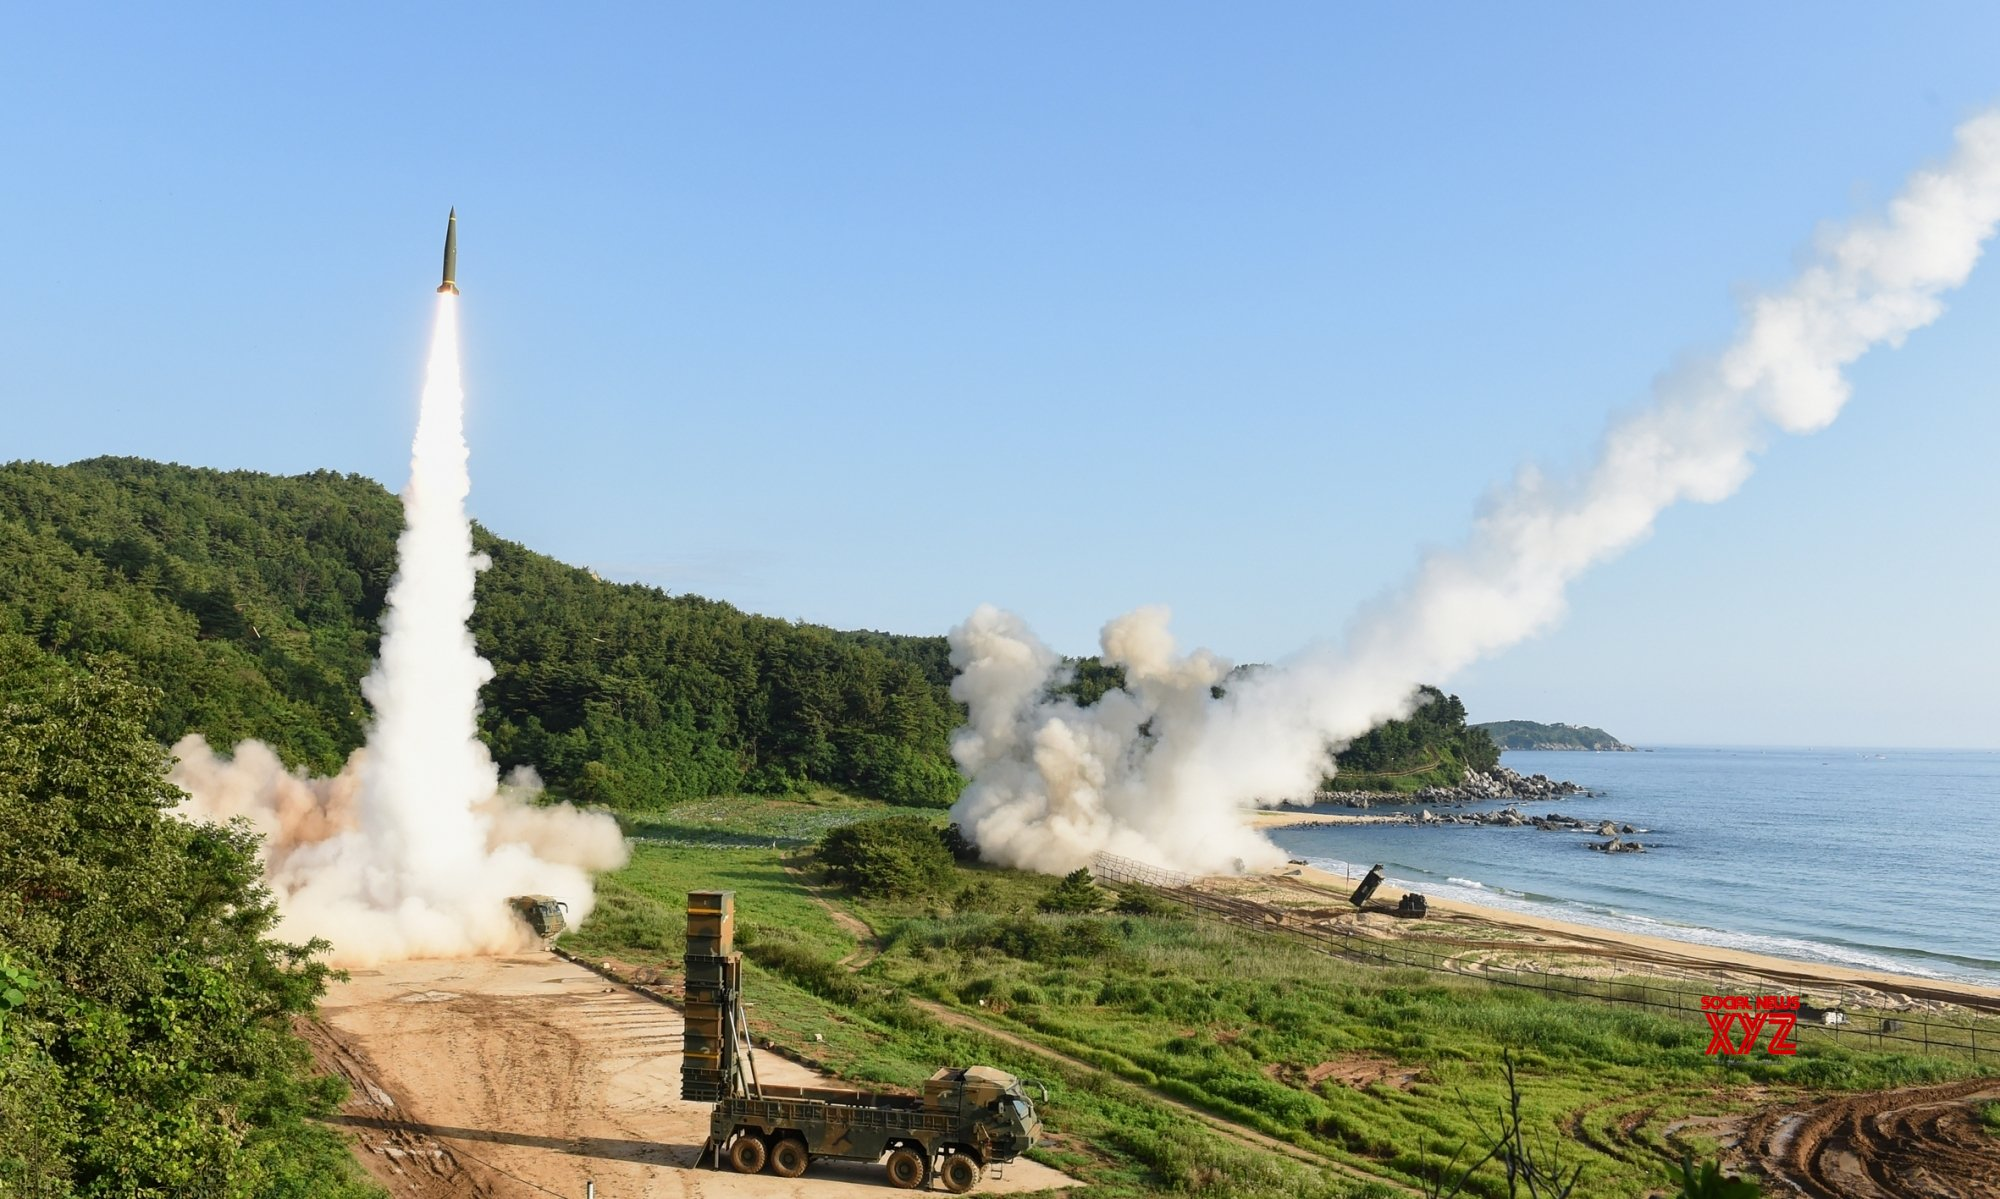 North Korea launches projectiles, rejects talks with South